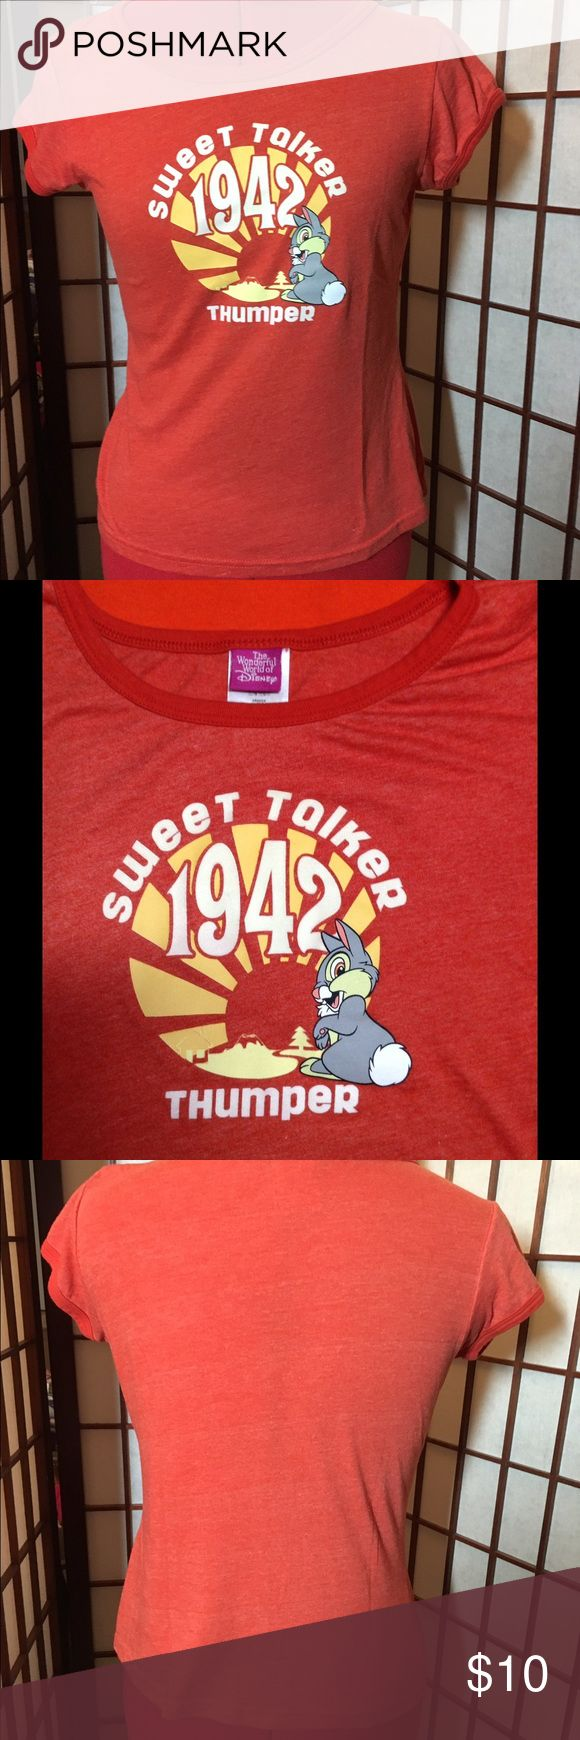 """Graphic Tee """"Sweet Talker 1942 Thumper"""" graphic tee from the mid 90s. Junior size large, fits like a women's small. 50% cotton 50% polyester. Machine washable. Disney Shirts & Tops Tees - Short Sleeve"""